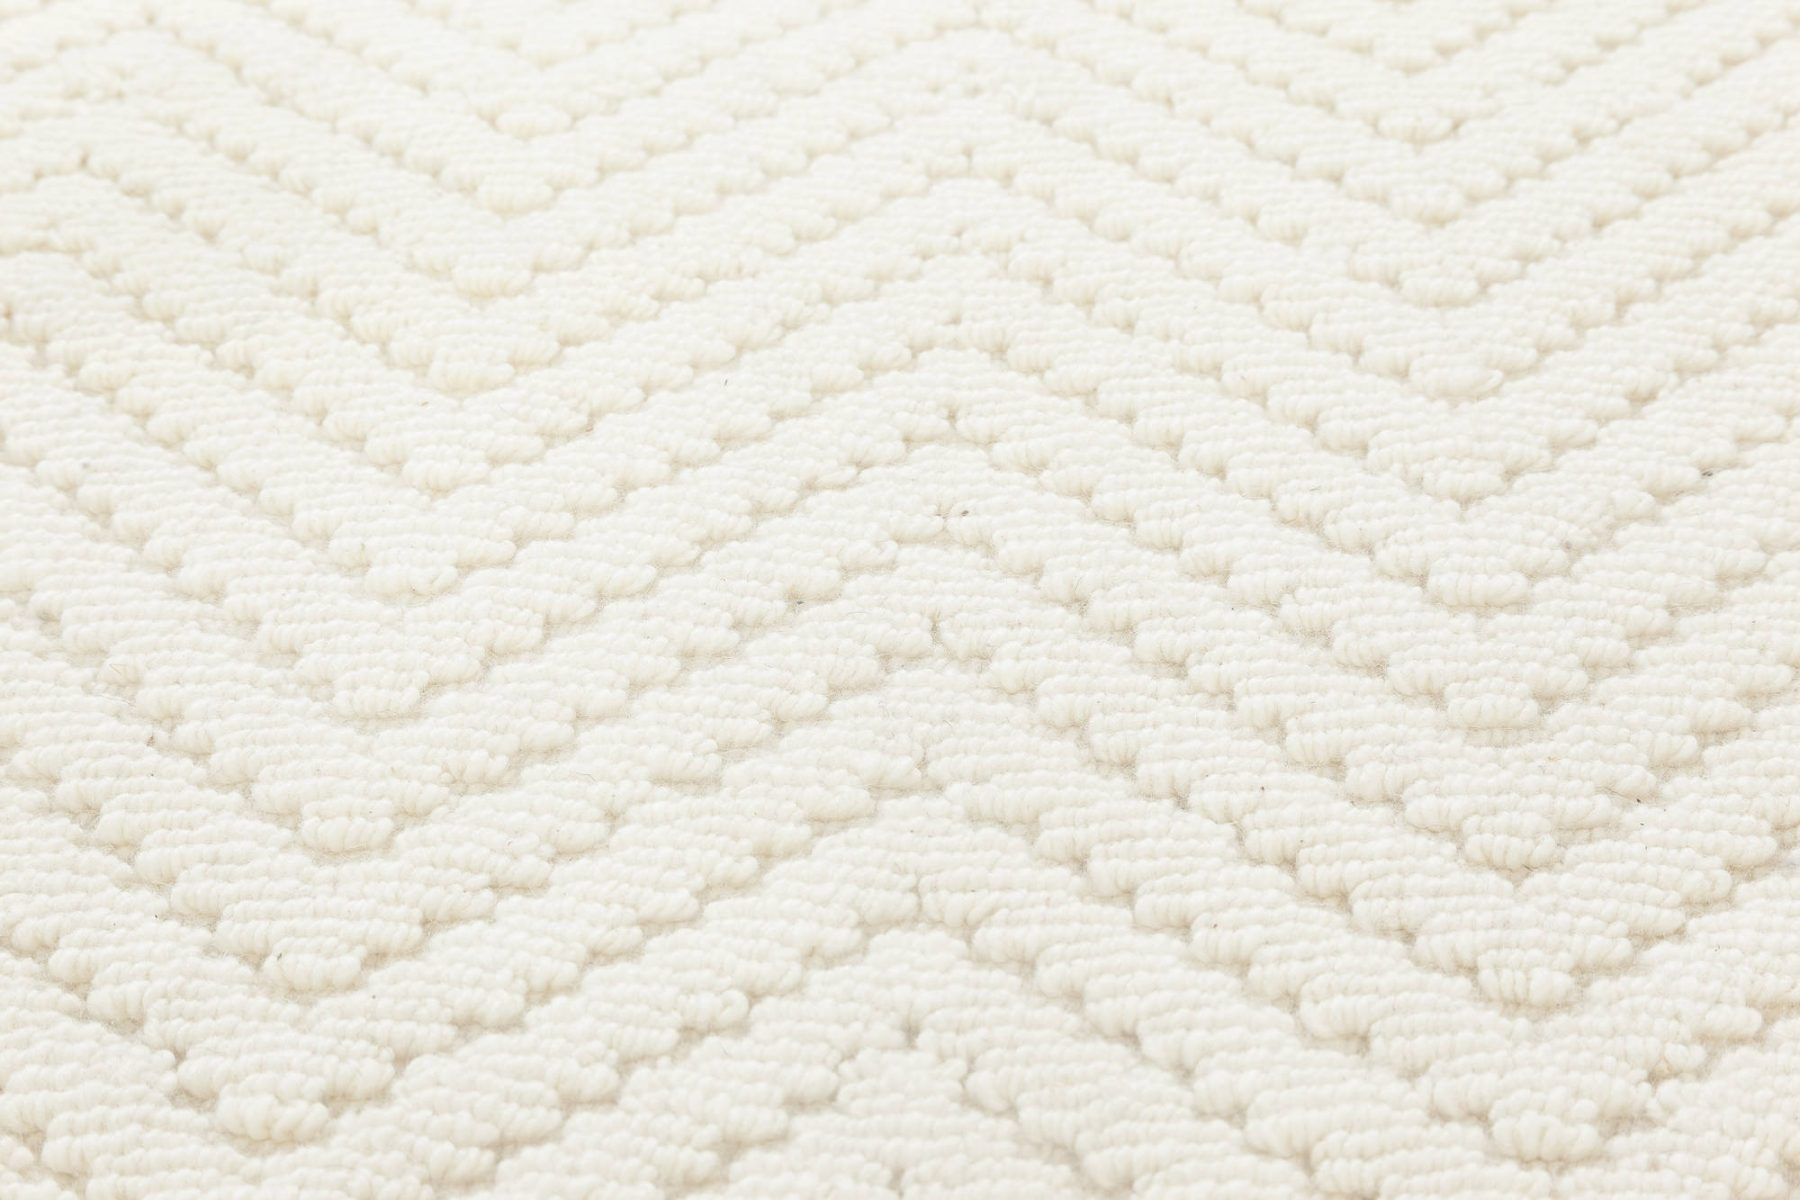 Bauer Collection Herringbone Design Geometric White Wool Rug II N11838